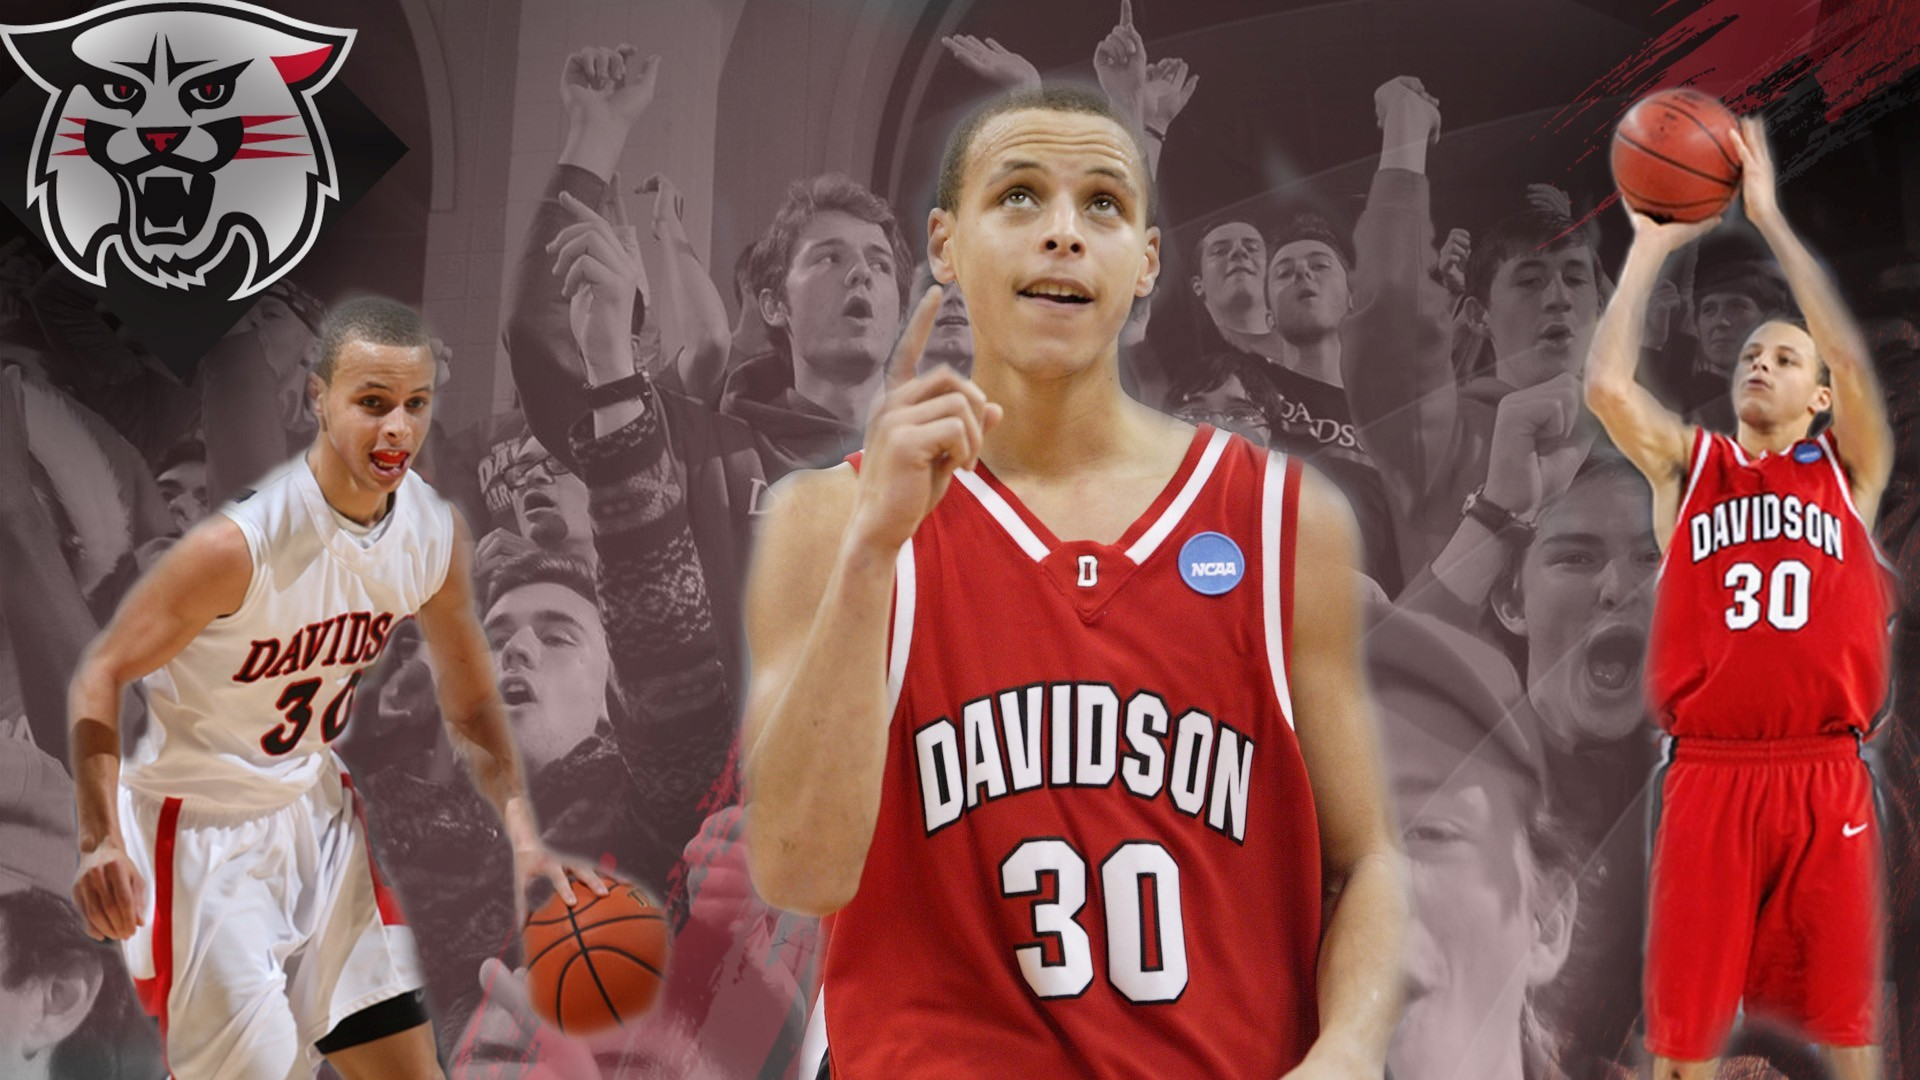 online store b13c1 1ec14 Stephen Curry to be Honored at Davidson College Jan. 24